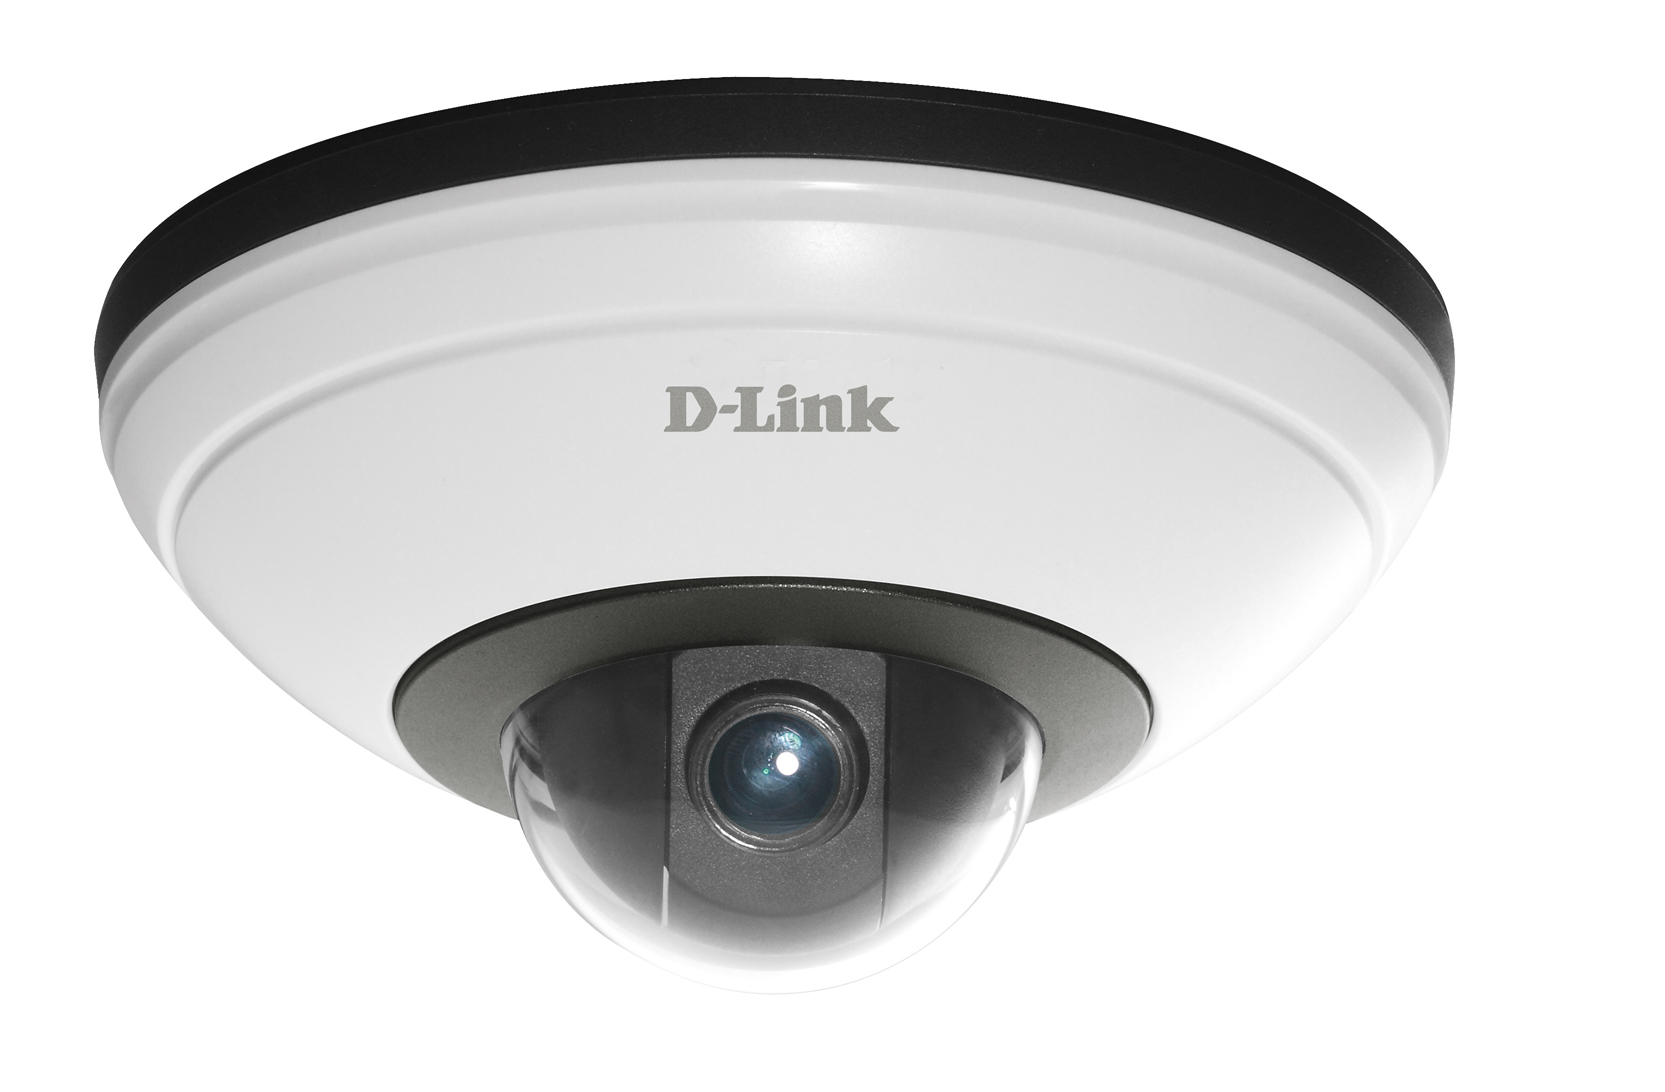 Full HD Mini Pan Tilt Dome PoE IP Camera - D-Link Philippines